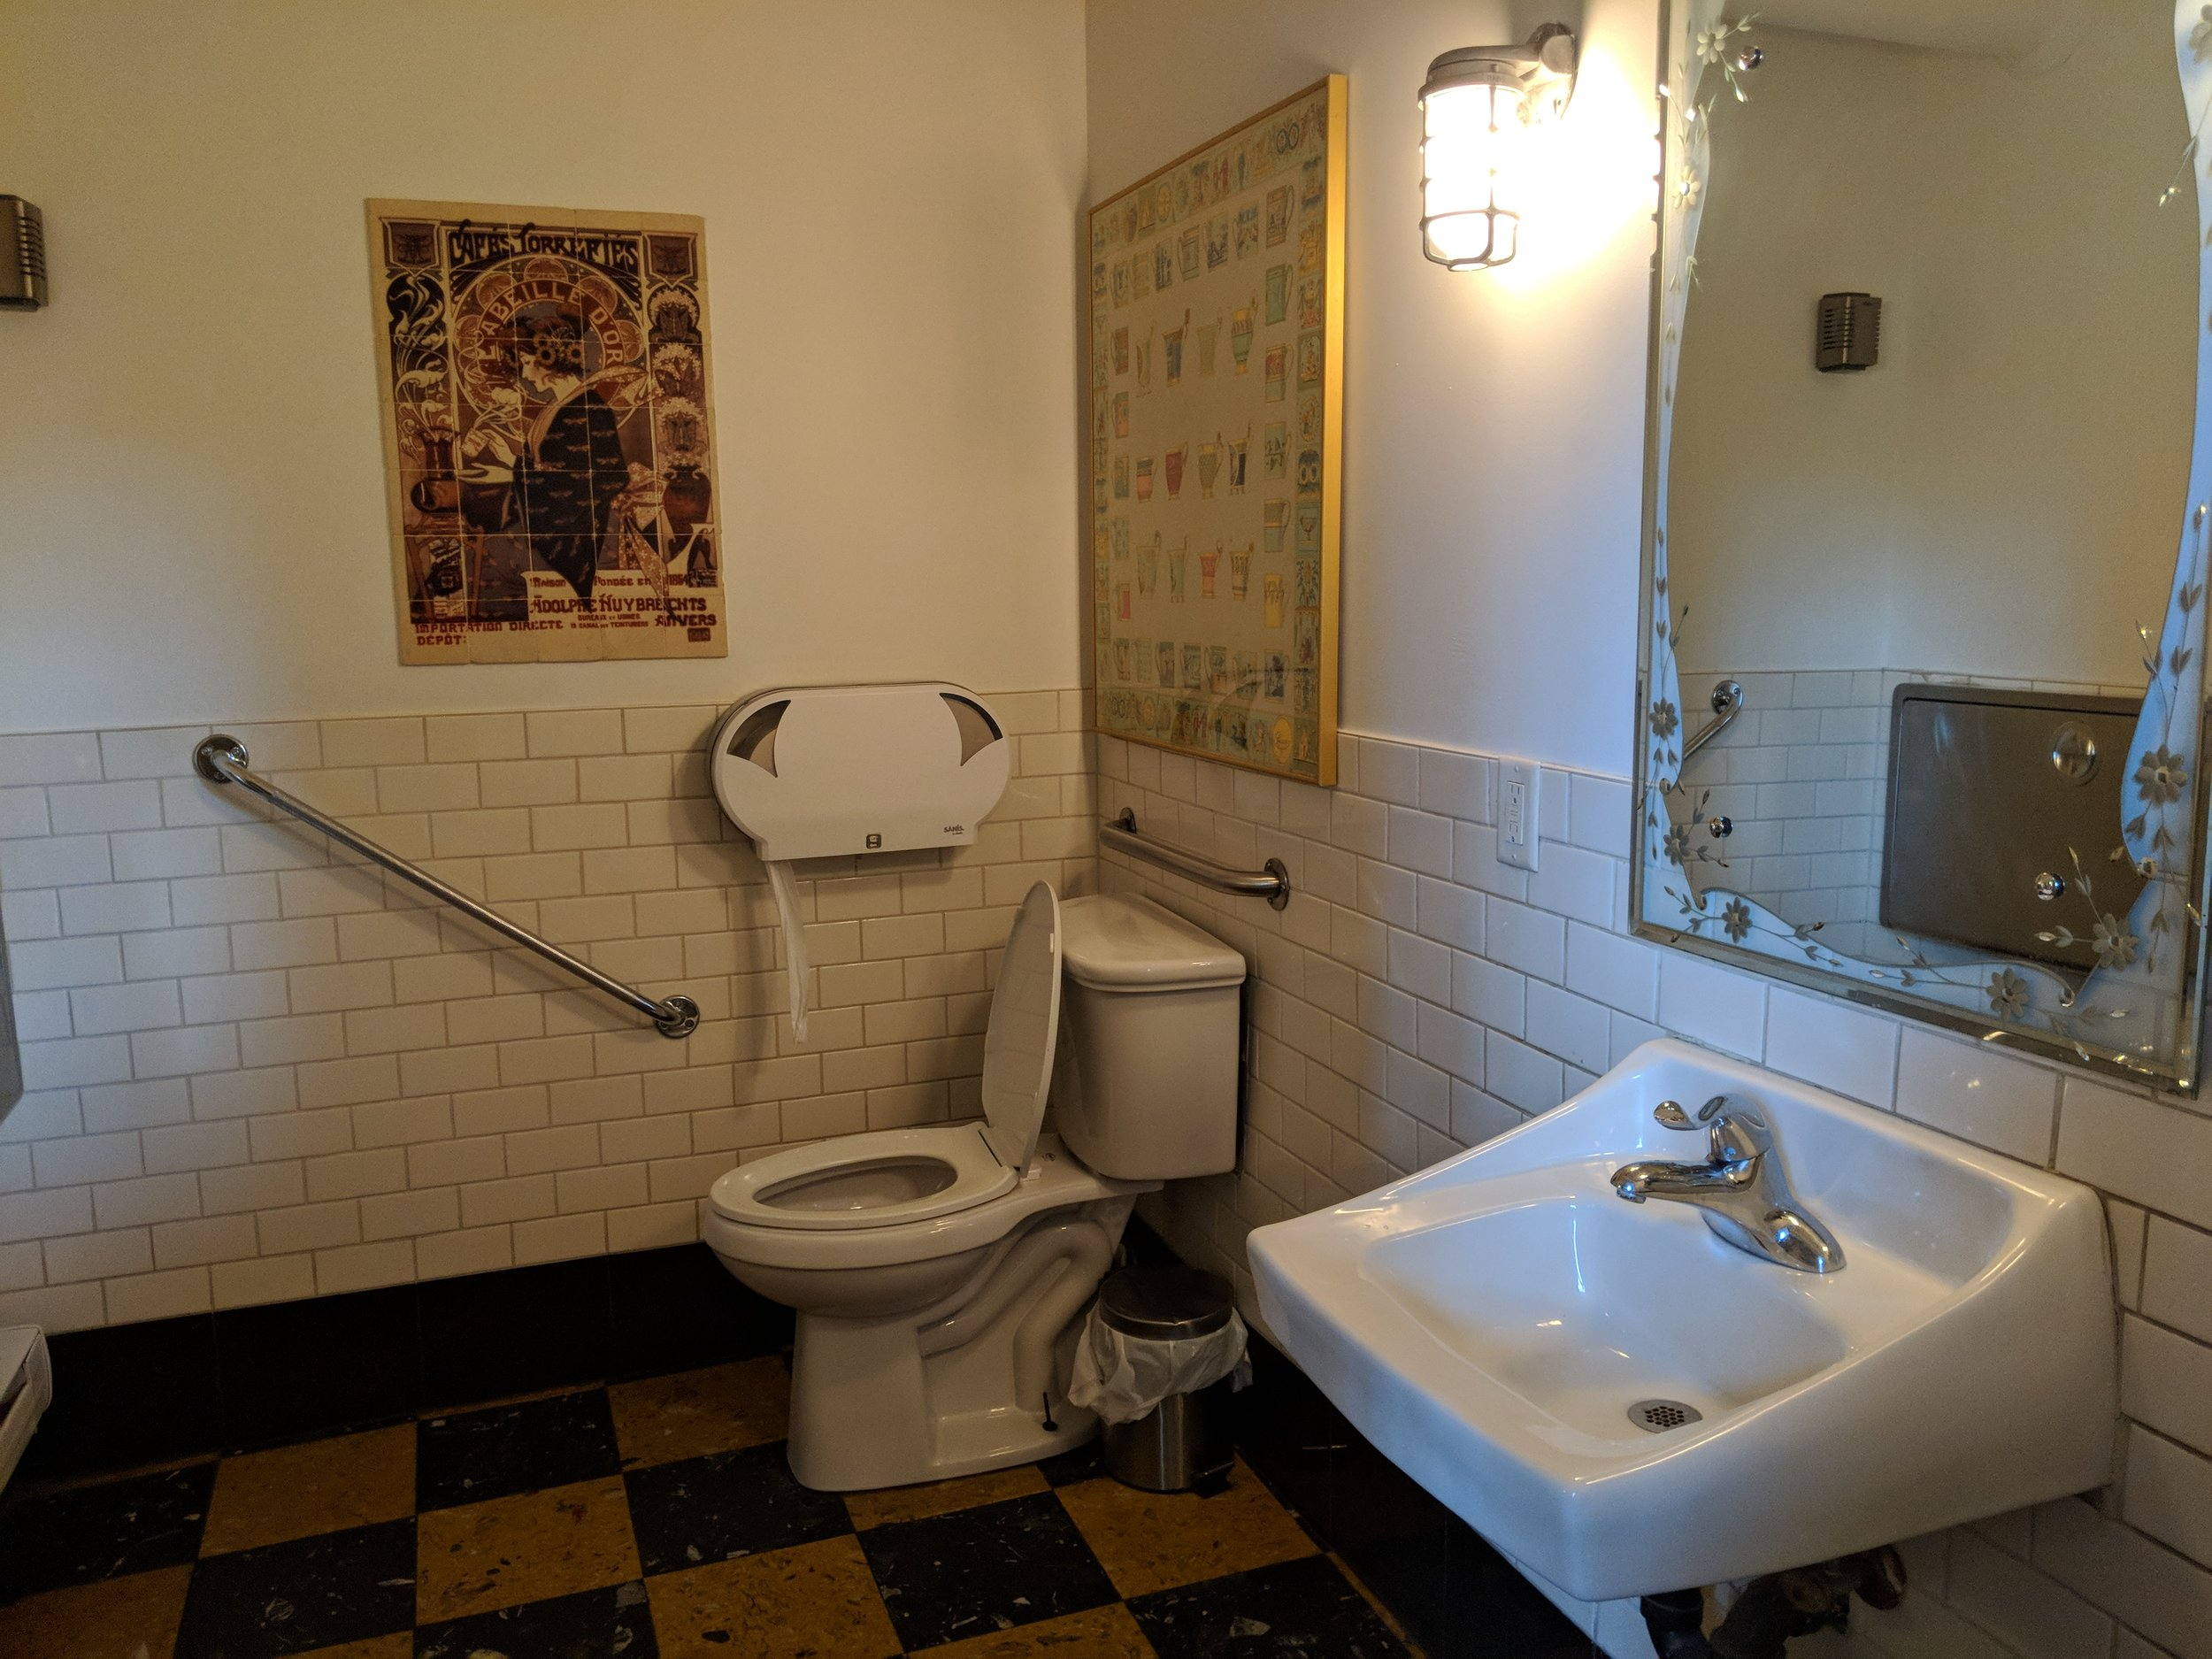 Picture of accessible washroom in Balzac's Coffee Roasters